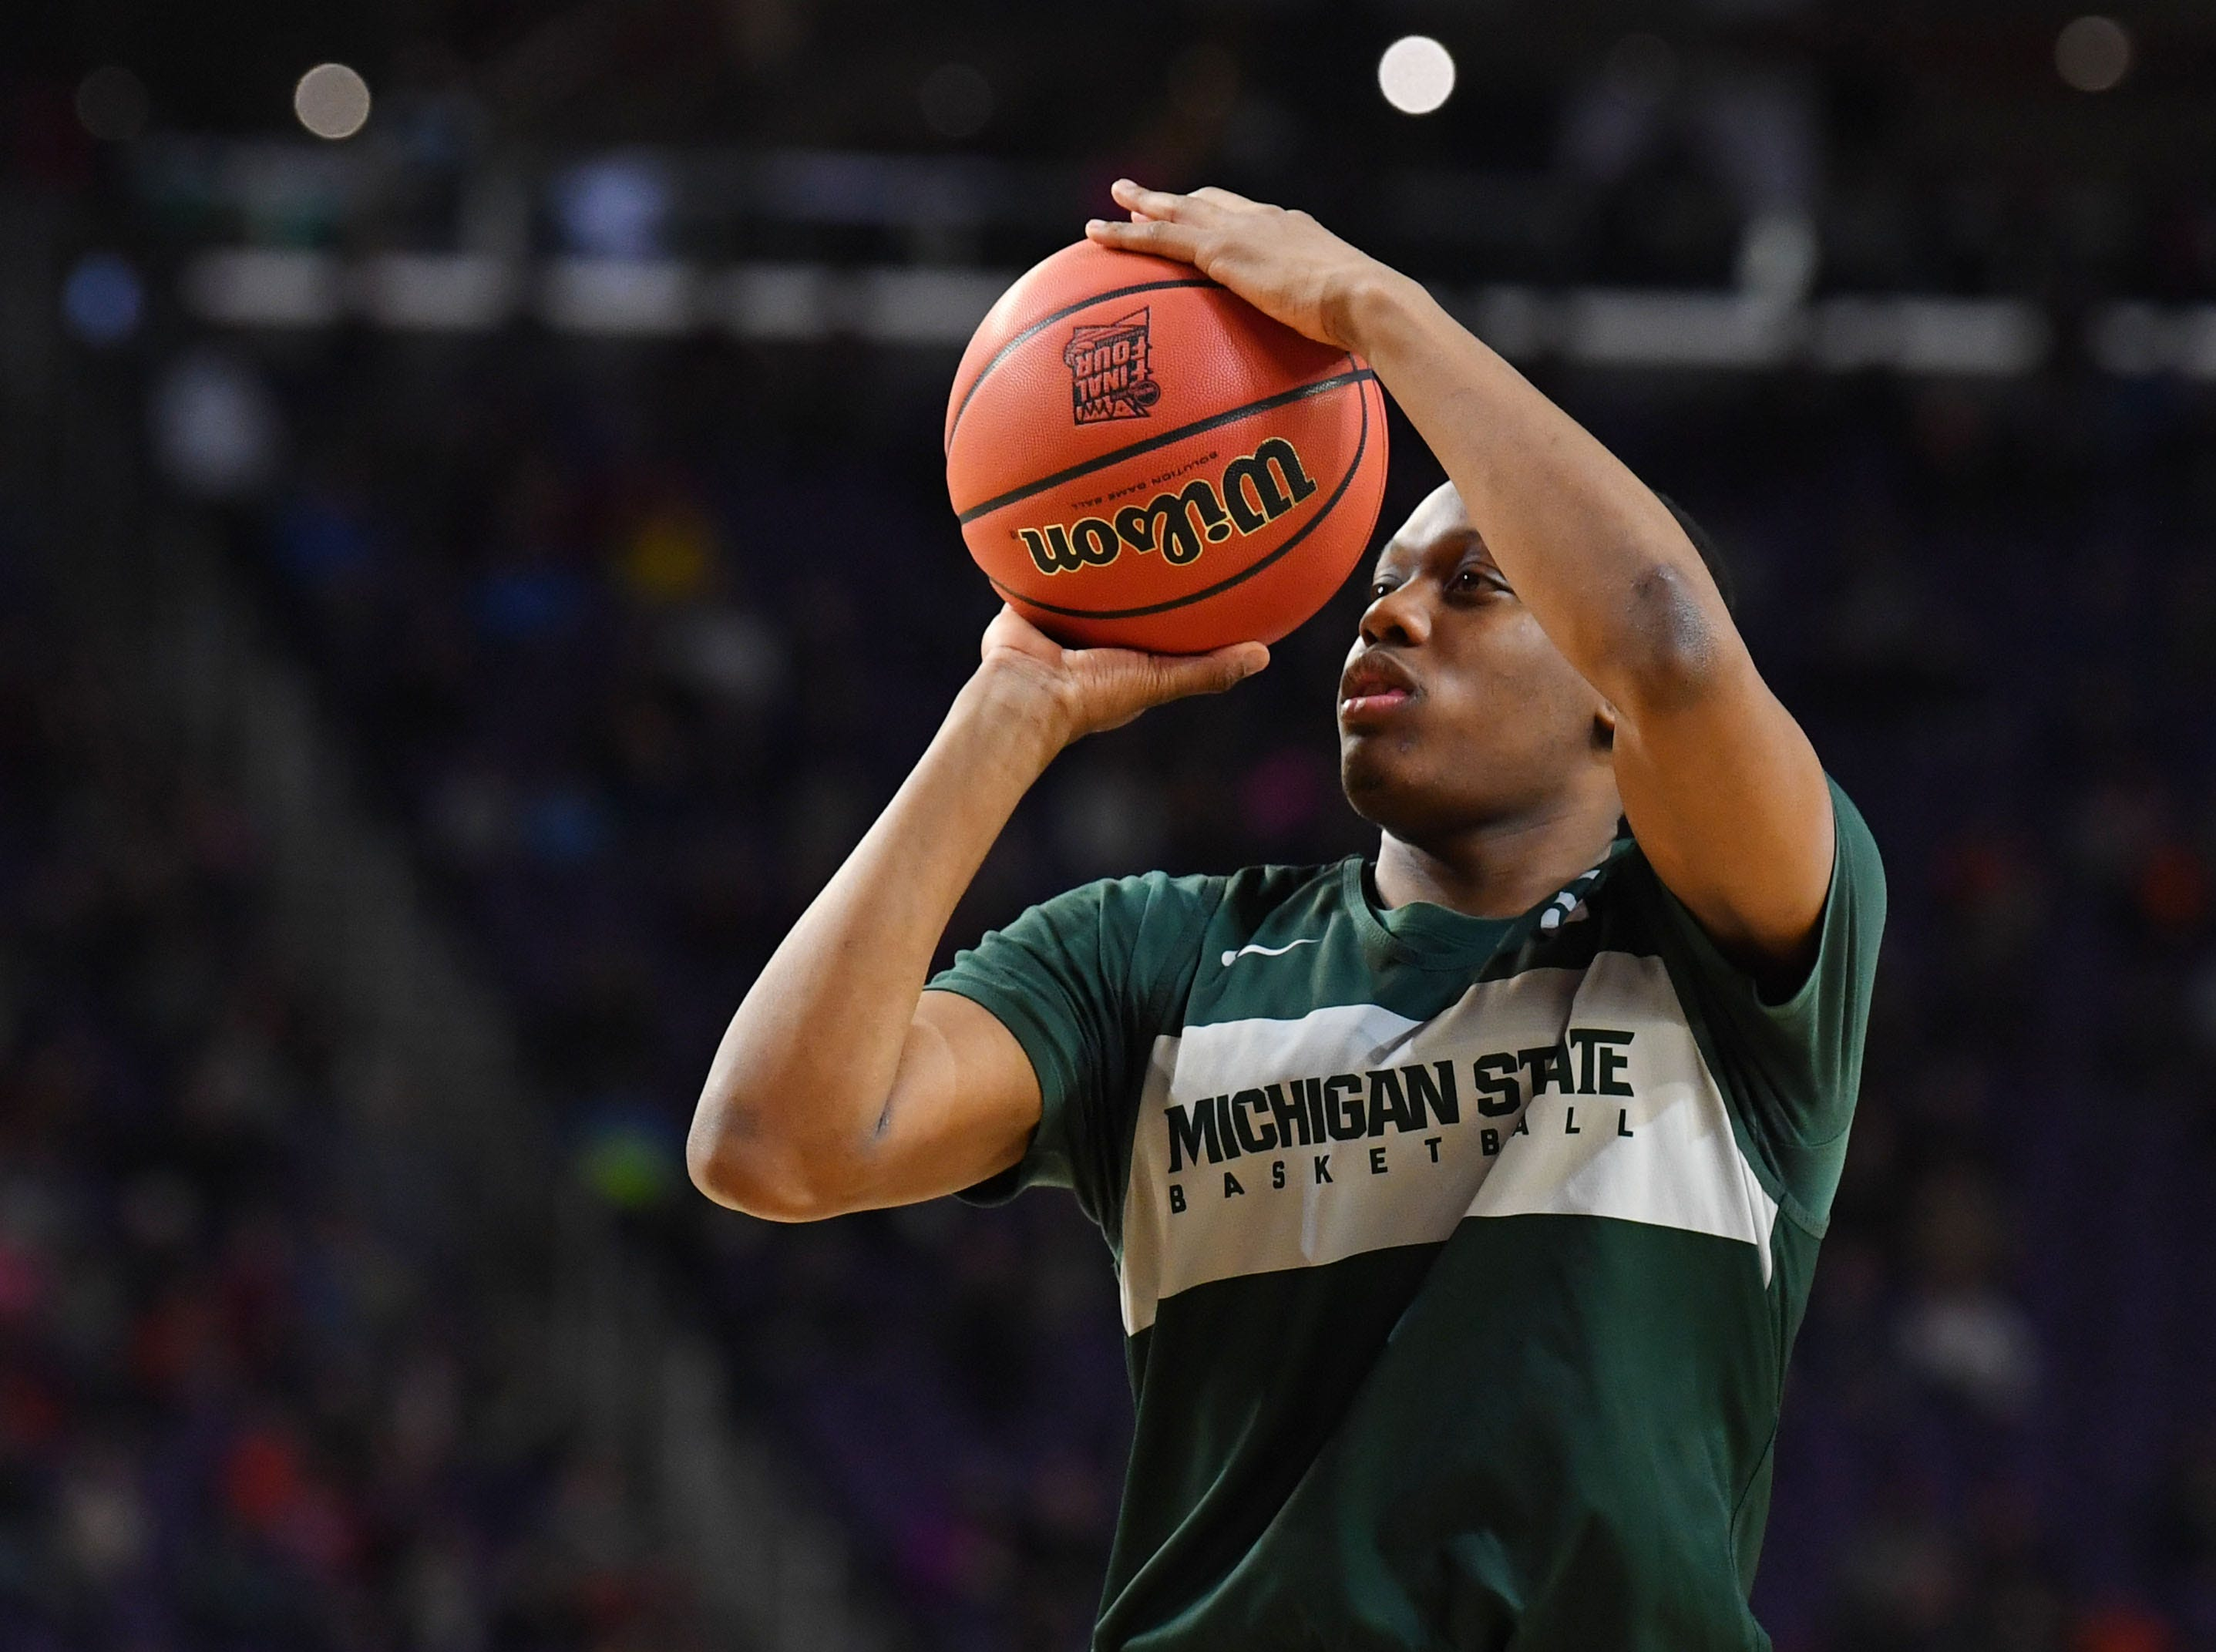 Apr 5, 2019; Minneapolis, MN, USA; Michigan State Spartans guard Cassius Winston shoots during practice for the 2019 men's Final Four at US Bank Stadium. Mandatory Credit: Robert Deutsch-USA TODAY Sports